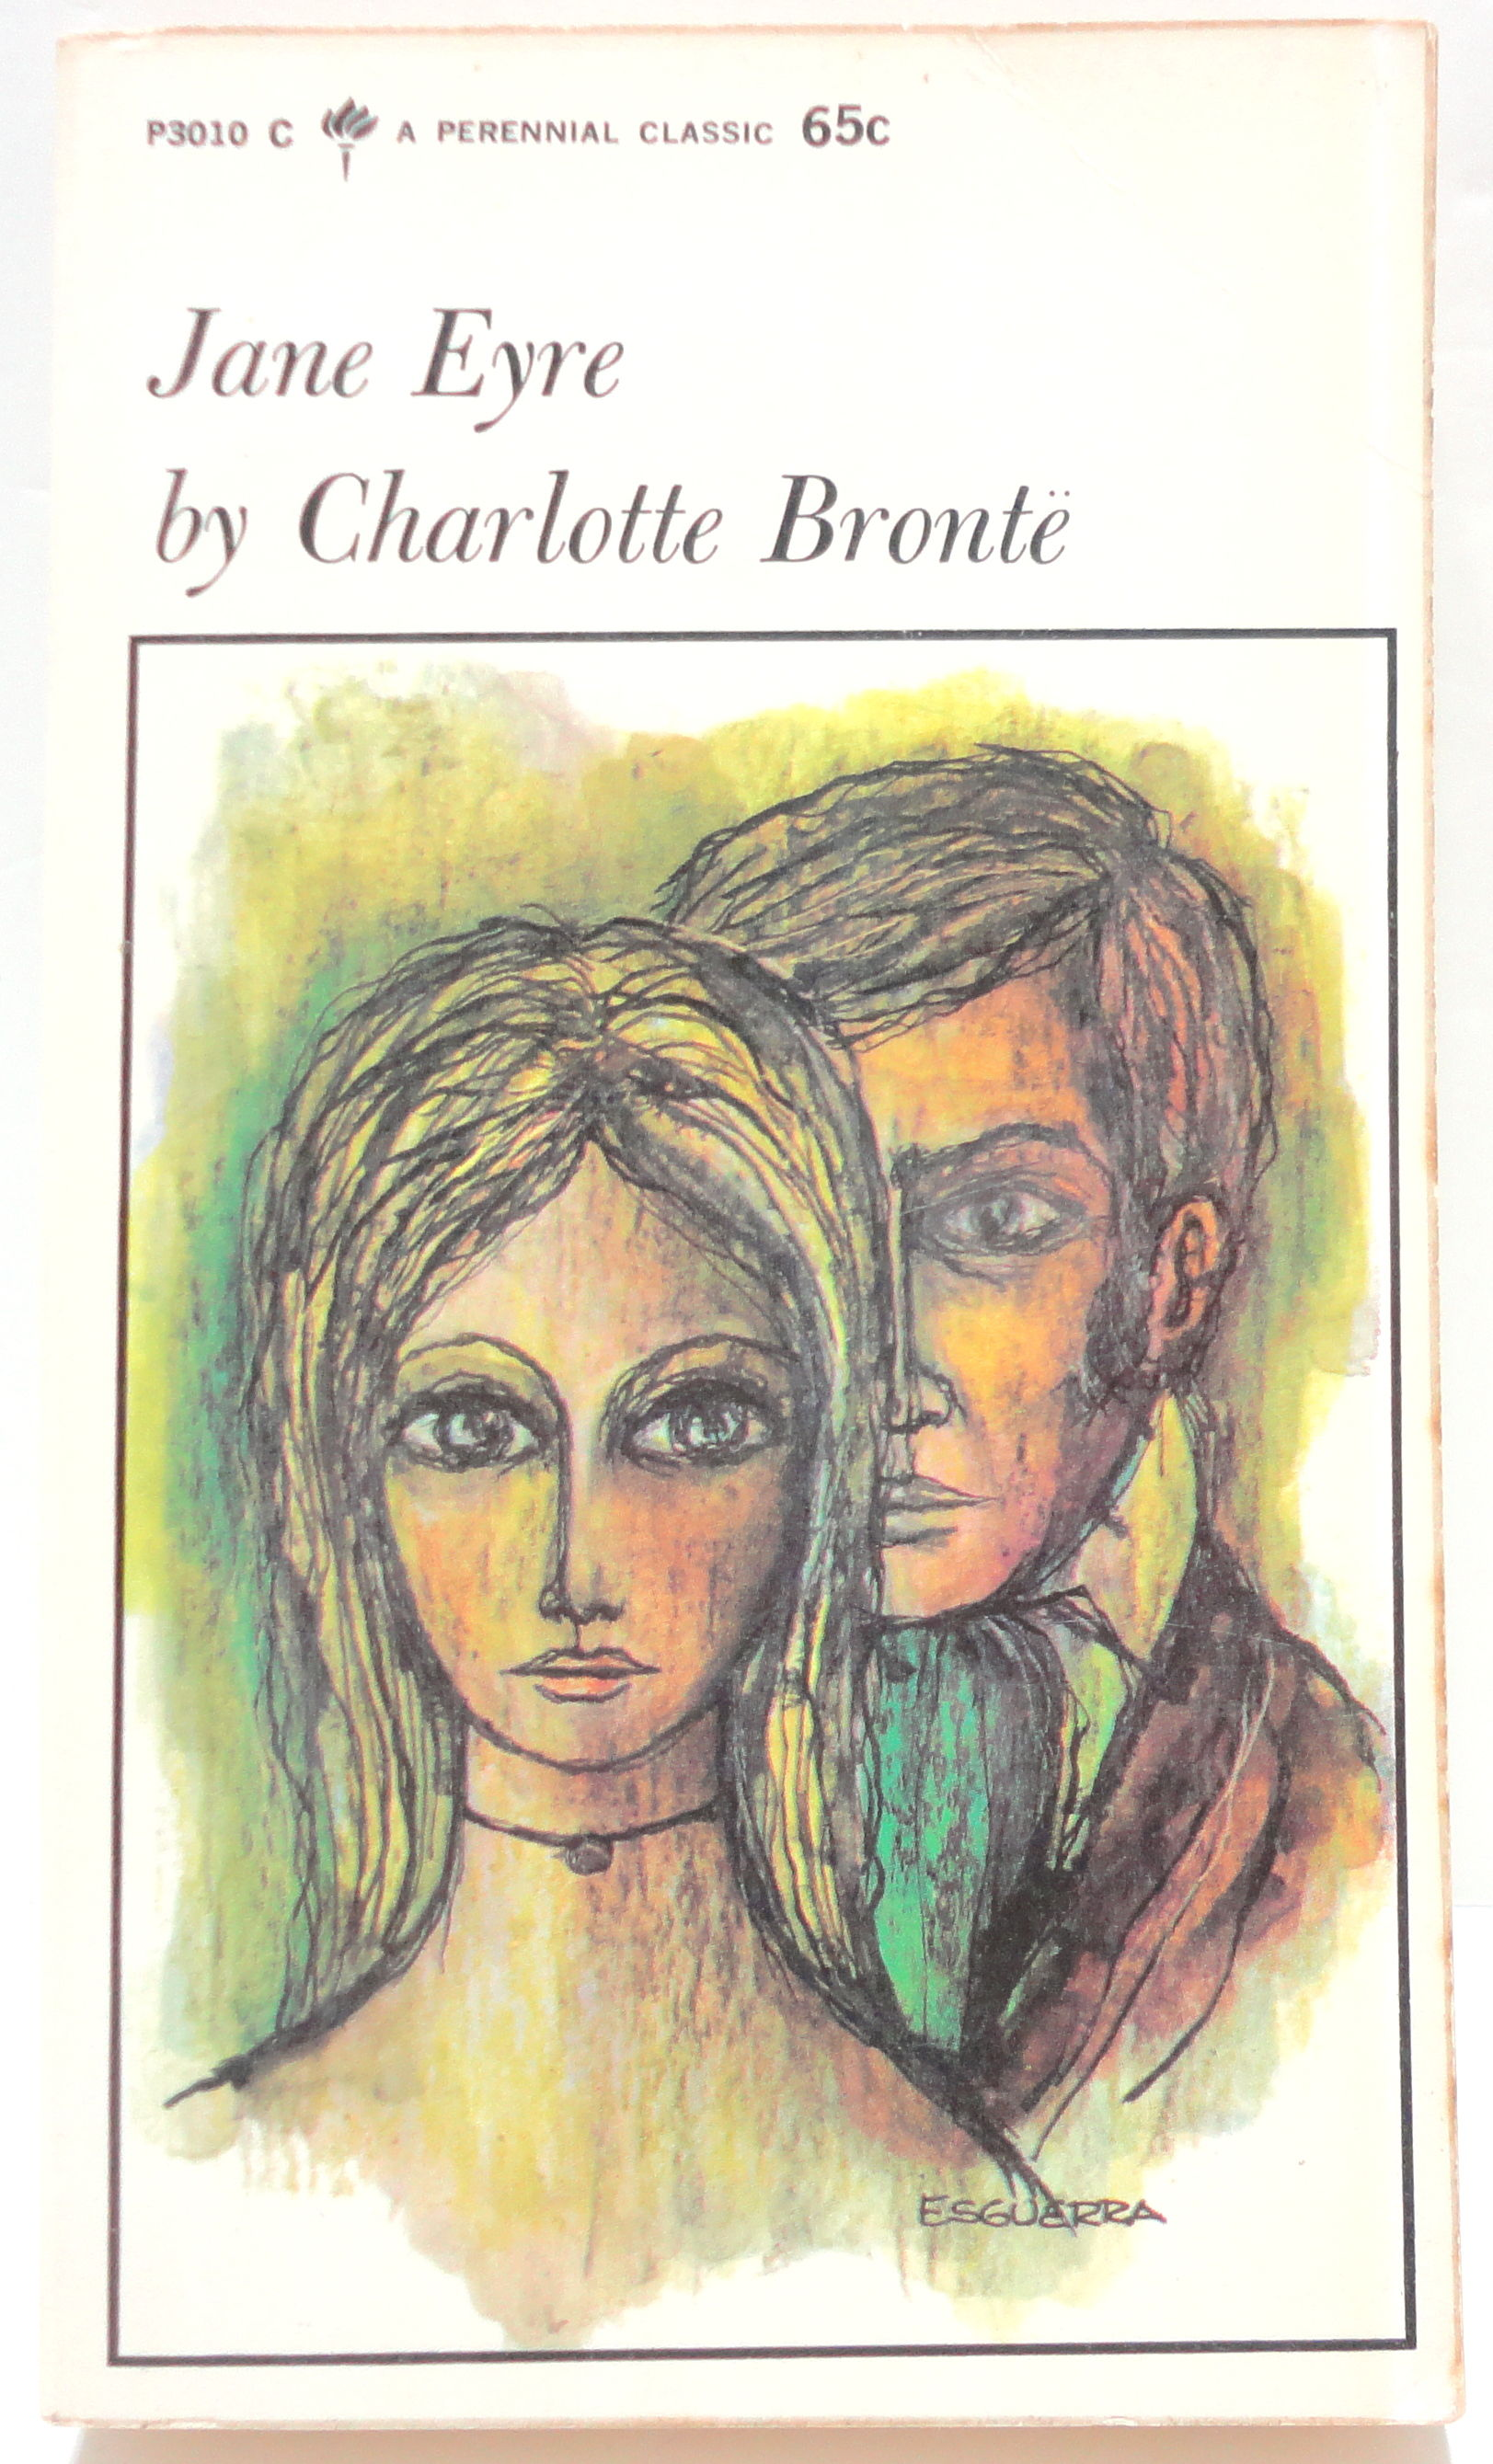 a literary analysis of the novel jane eyre by charlotte bronte Do you think jane eyre is a feminist novel  how does jane eyre compare to  other heroines of 19th century english literature  to jane's rejection of wealth  and its perception of being trivial by john shows a criticism of society's values.